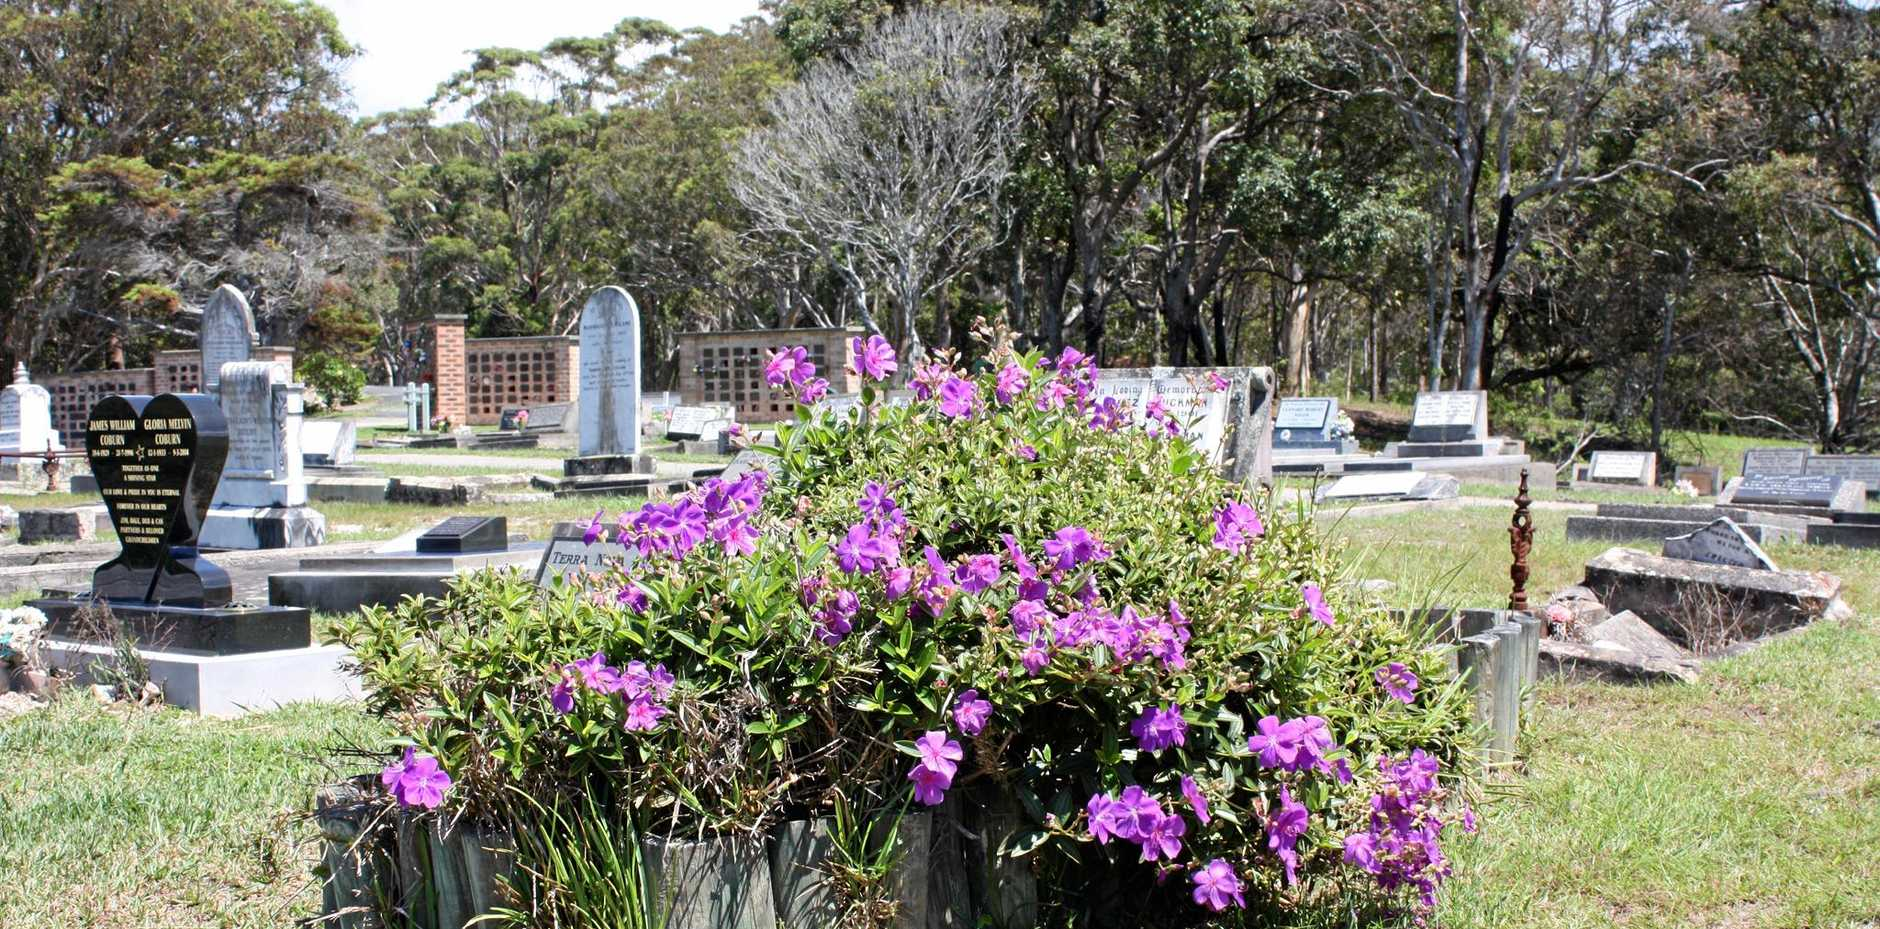 EVERLASTING VIEWS: It may not be a modern bushland burial ground, but Nambucca Heads cemetery has a peaceful ambience, sea views and some colourful new life flourishing among the monuments.